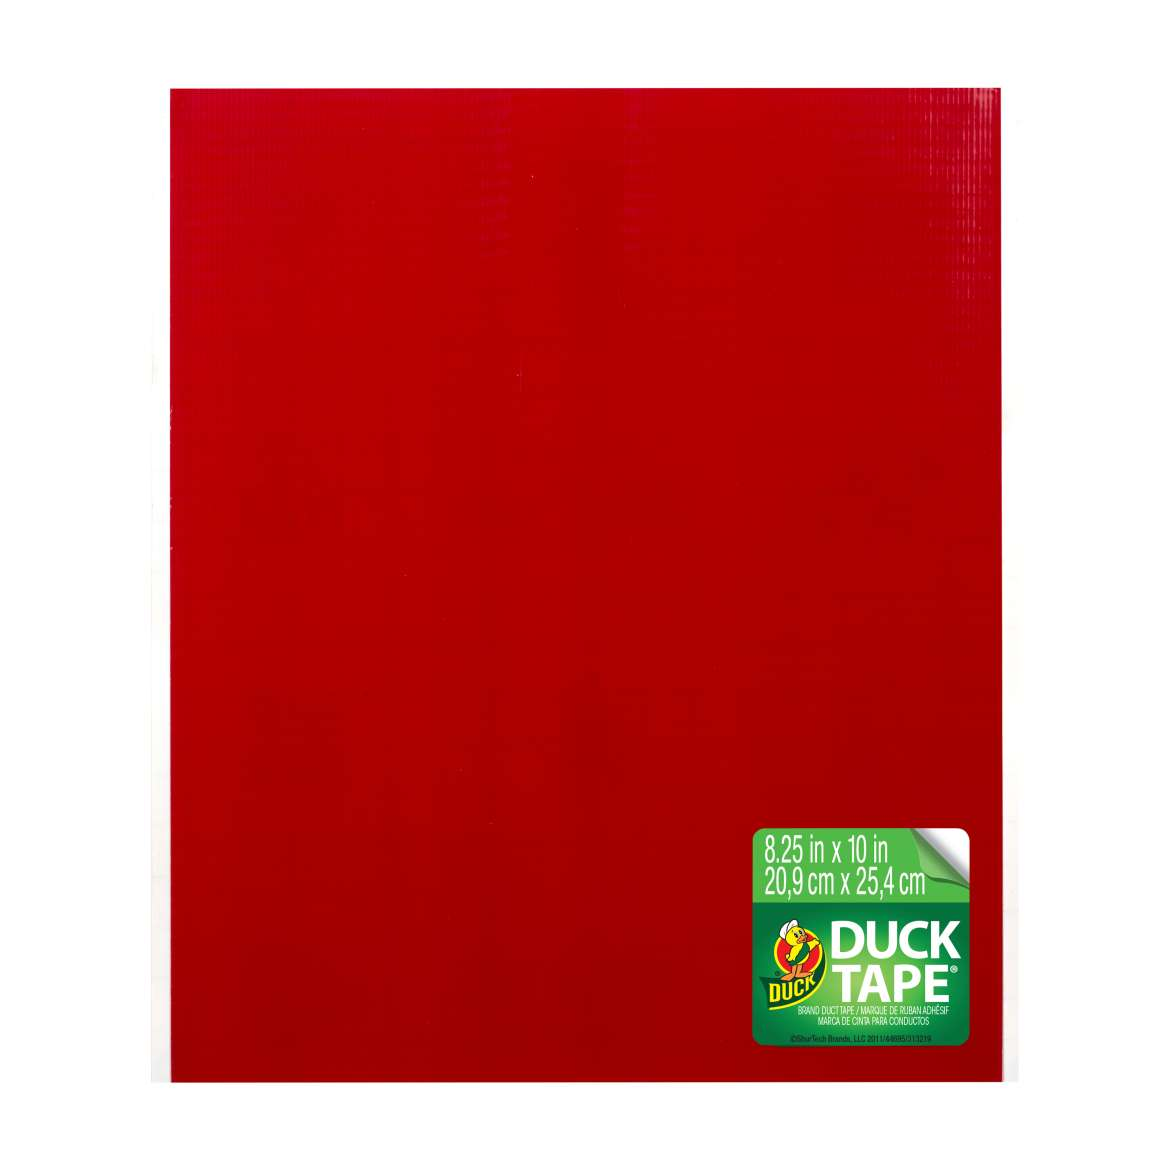 Color Duck Tape® Sheets - Red, 6 pk, 8.25 in. x 10 in. Image